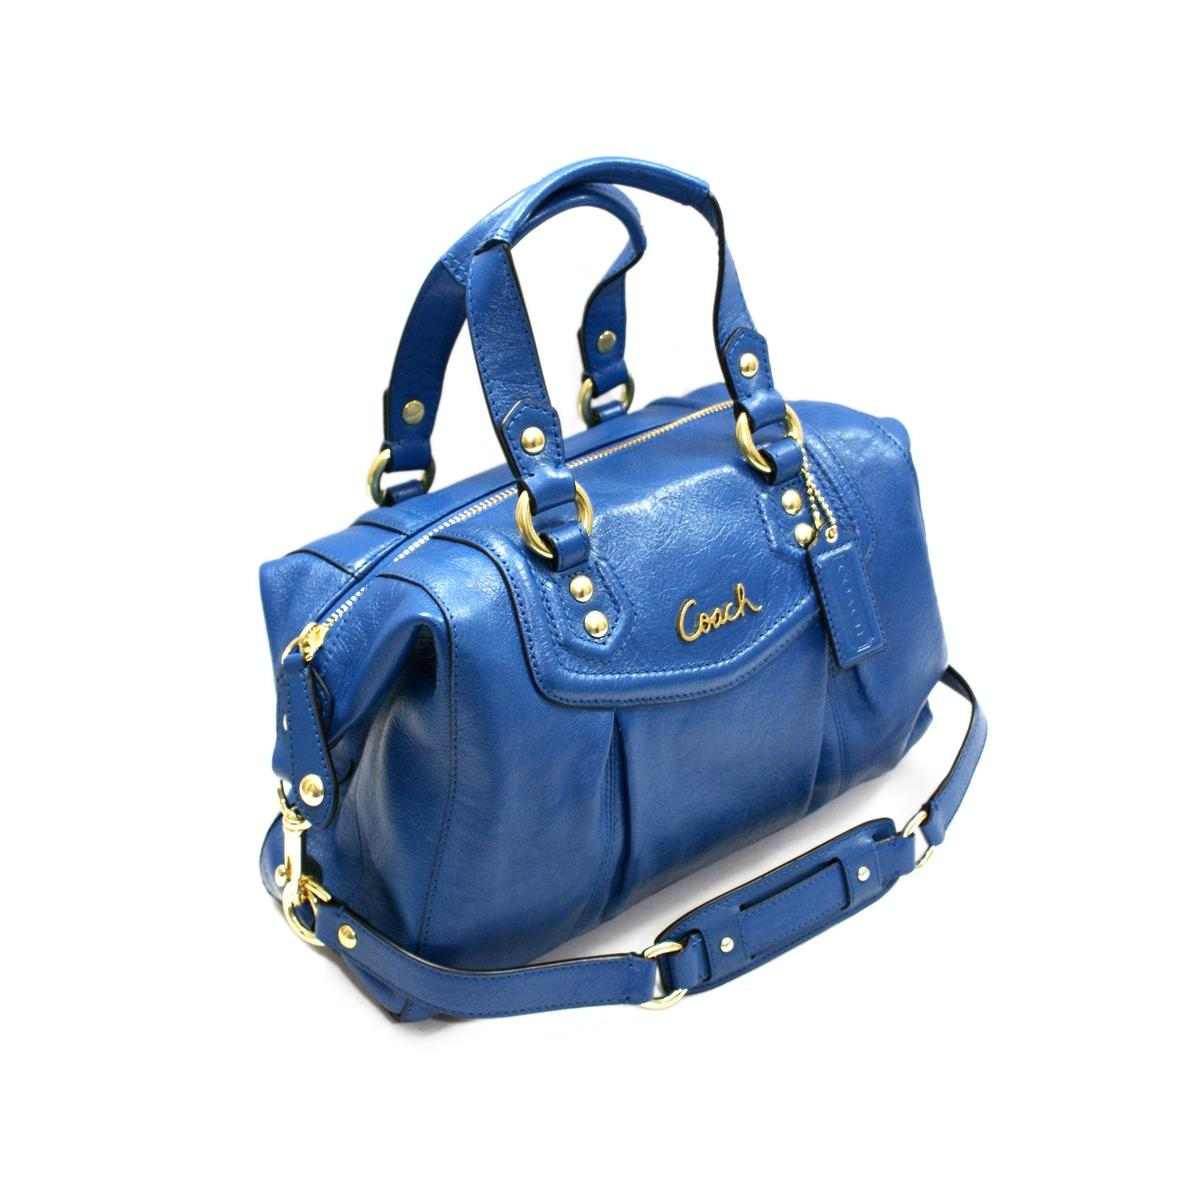 Coach Ashley Leather Satchel Shoulder Bag Cobalt Blue